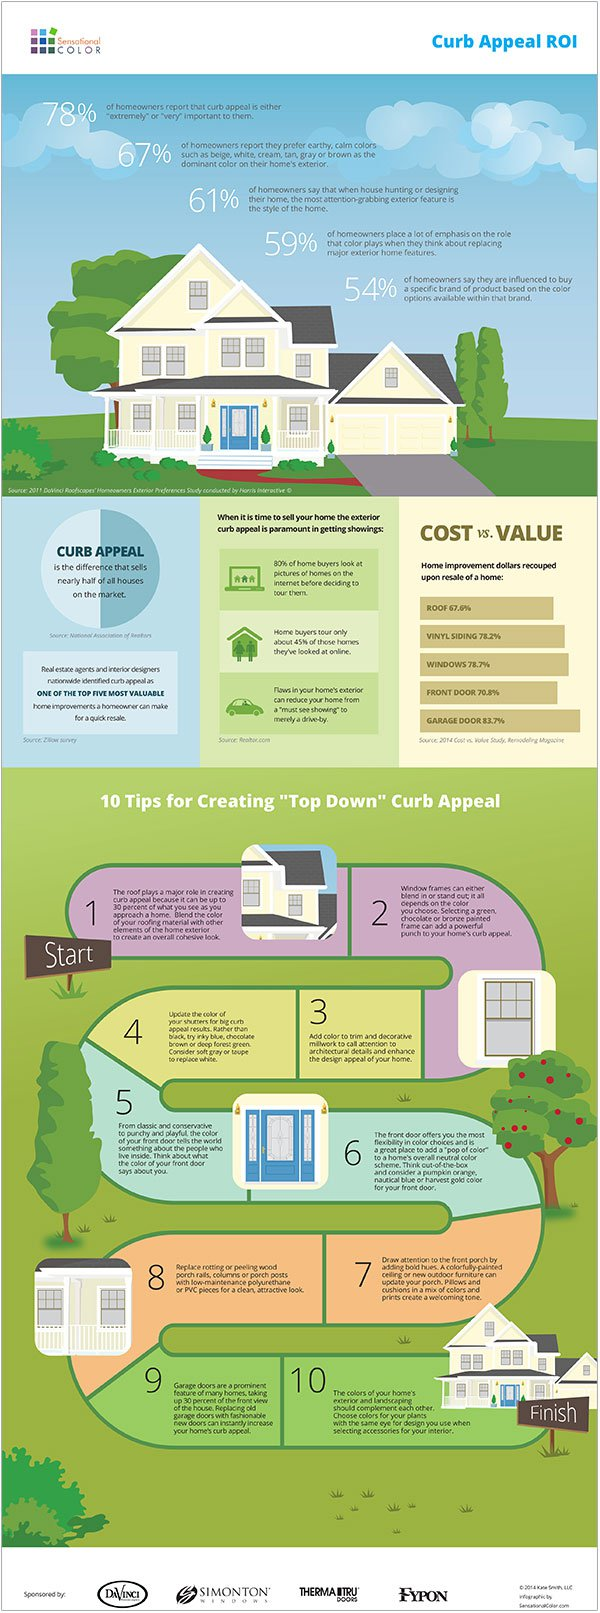 Curb-Appeal-ROI-Infographic